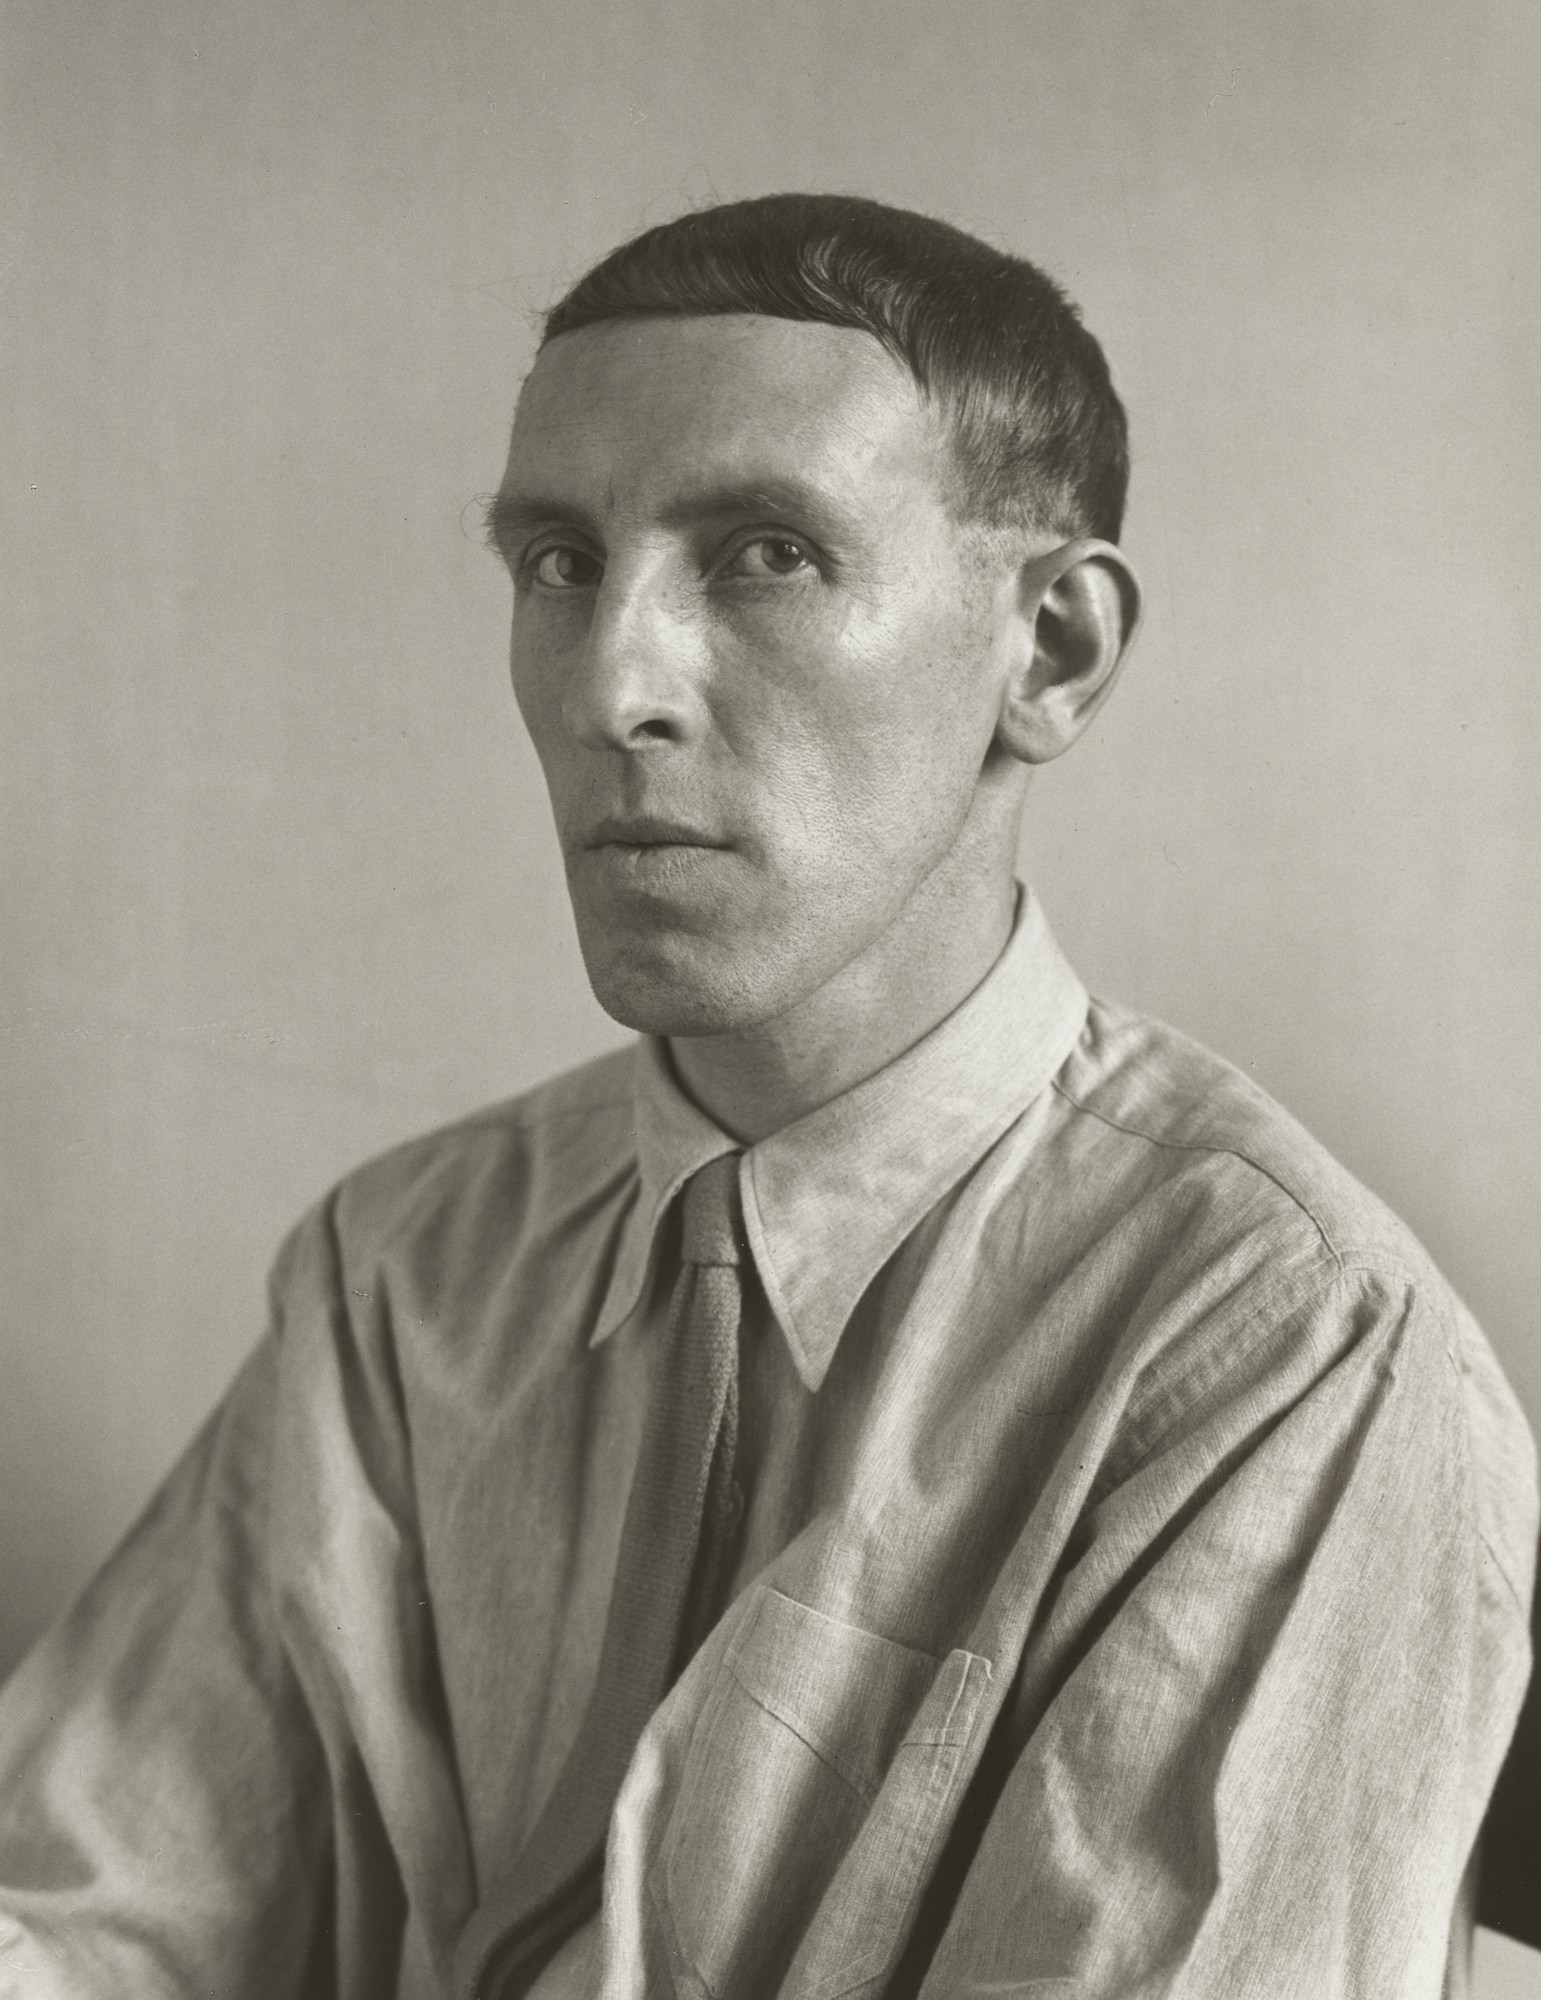 August Sander. Painter [Heinrich Hoerle]. 1928